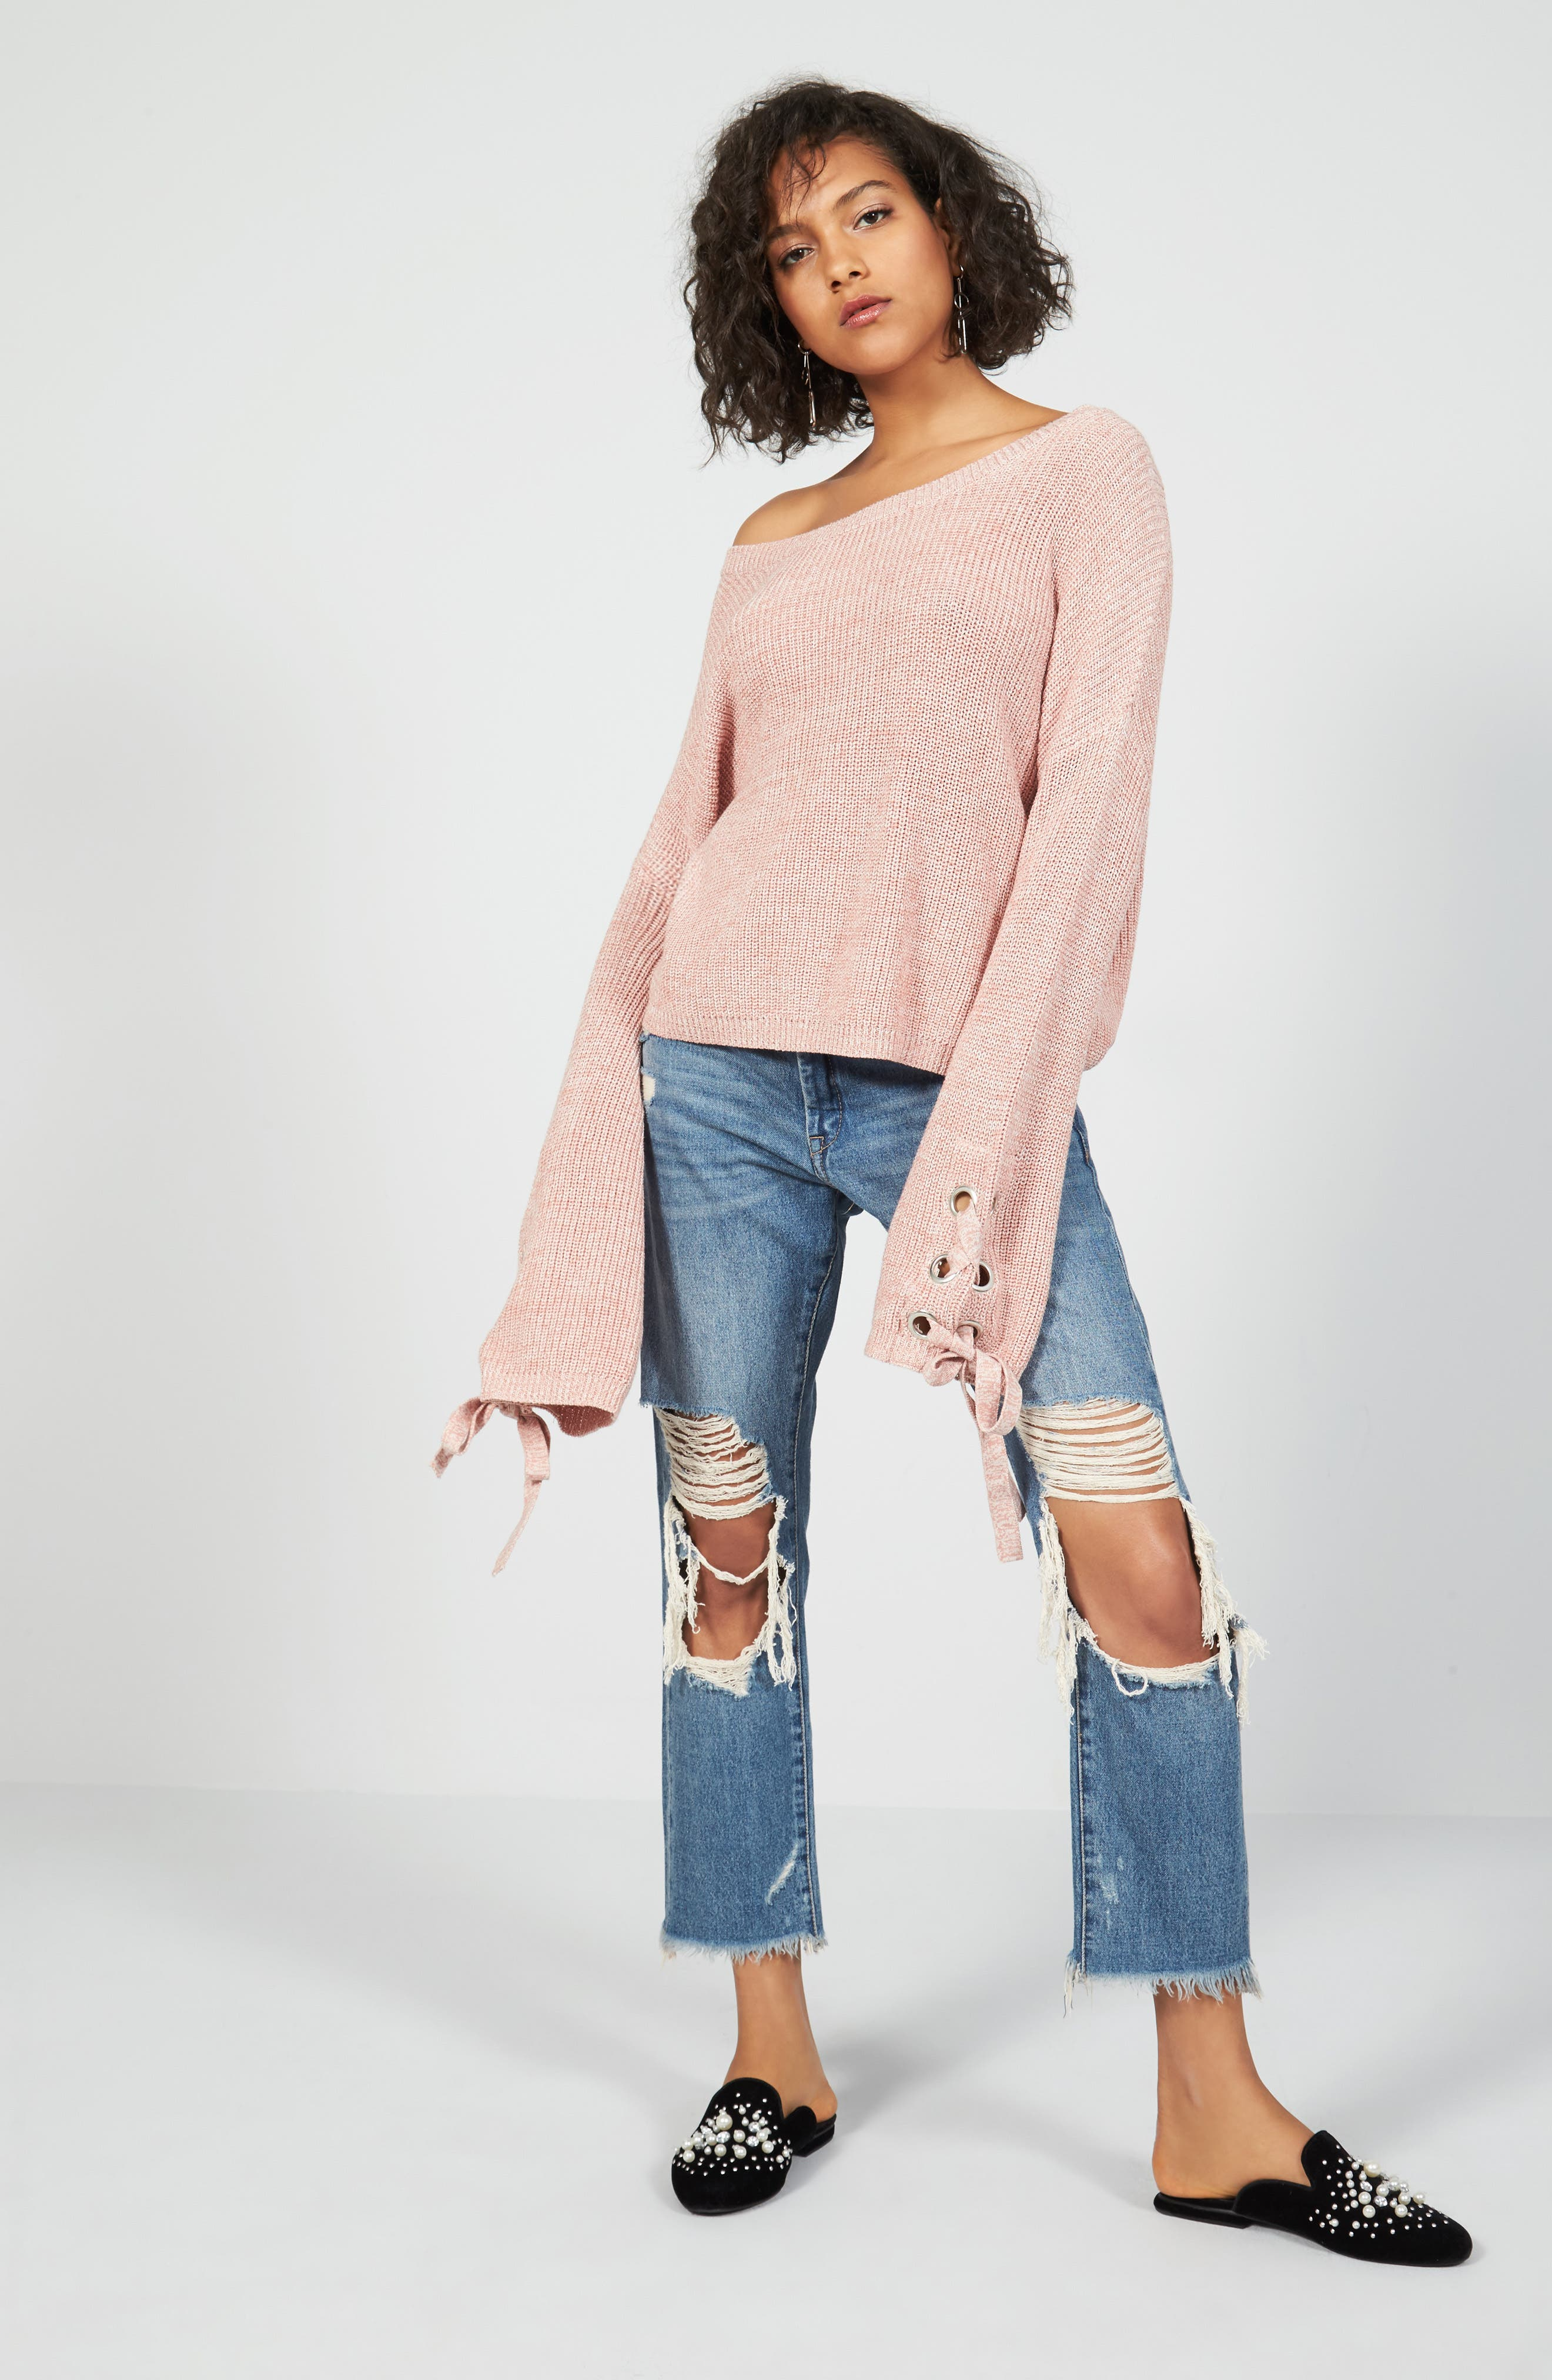 Love By Design Pullover & BLANKNYC Jeans Outfit with Accessories